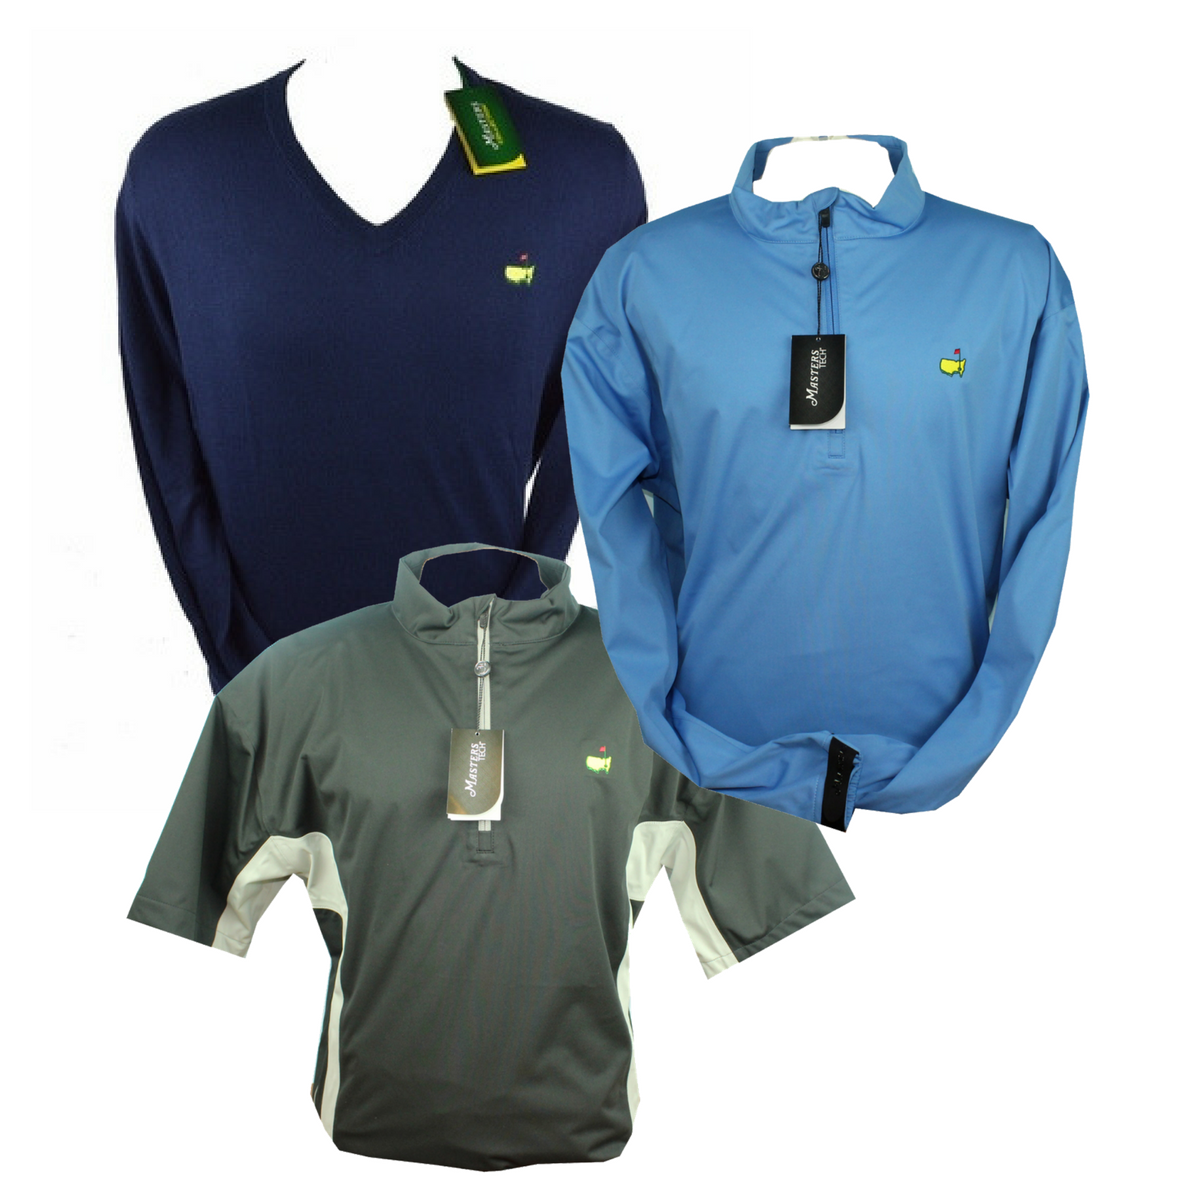 2018 masters merchandise golf hats shirts pin flags balls outerwear buycottarizona Image collections